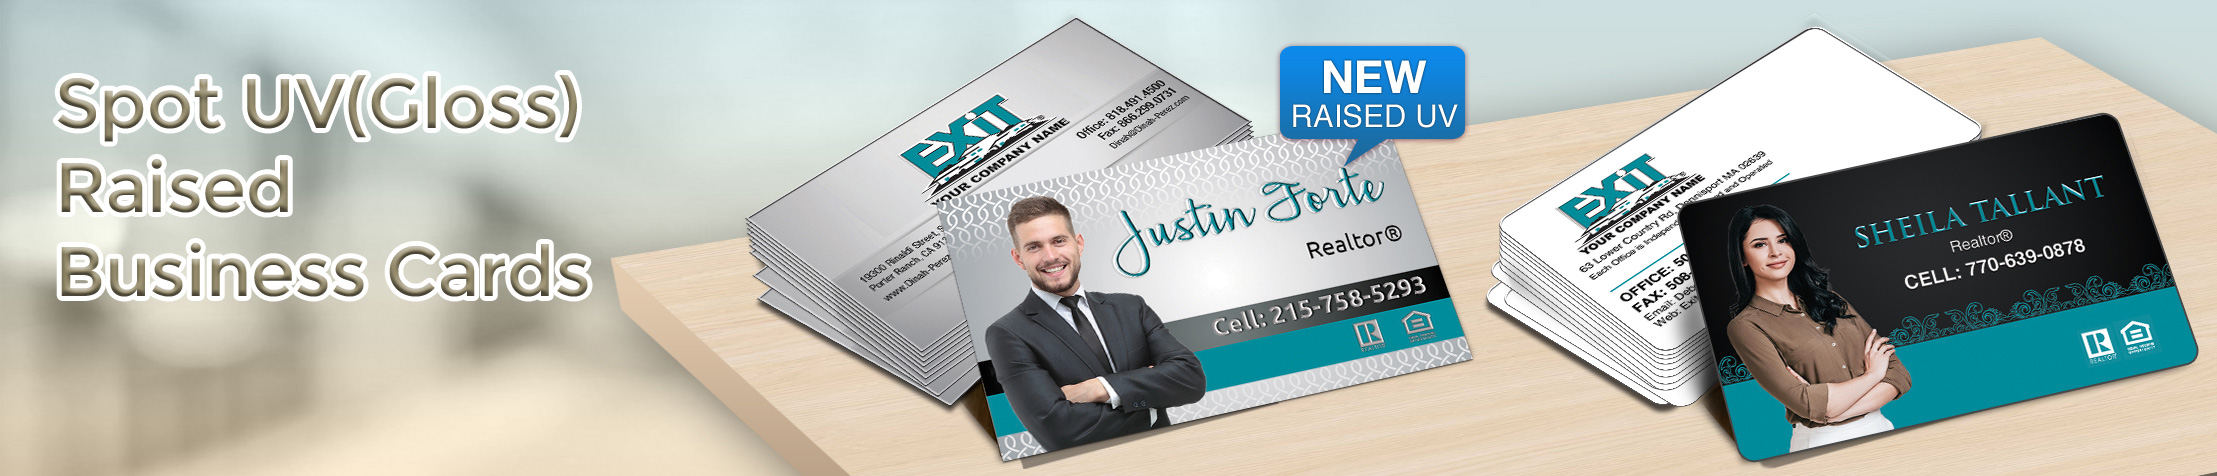 Exit Realty Spot UV(Gloss) Raised Business Cards - Exit Realty Approved Vendor - Glossy, Embossed Business Cards for Realtors | BestPrintBuy.com